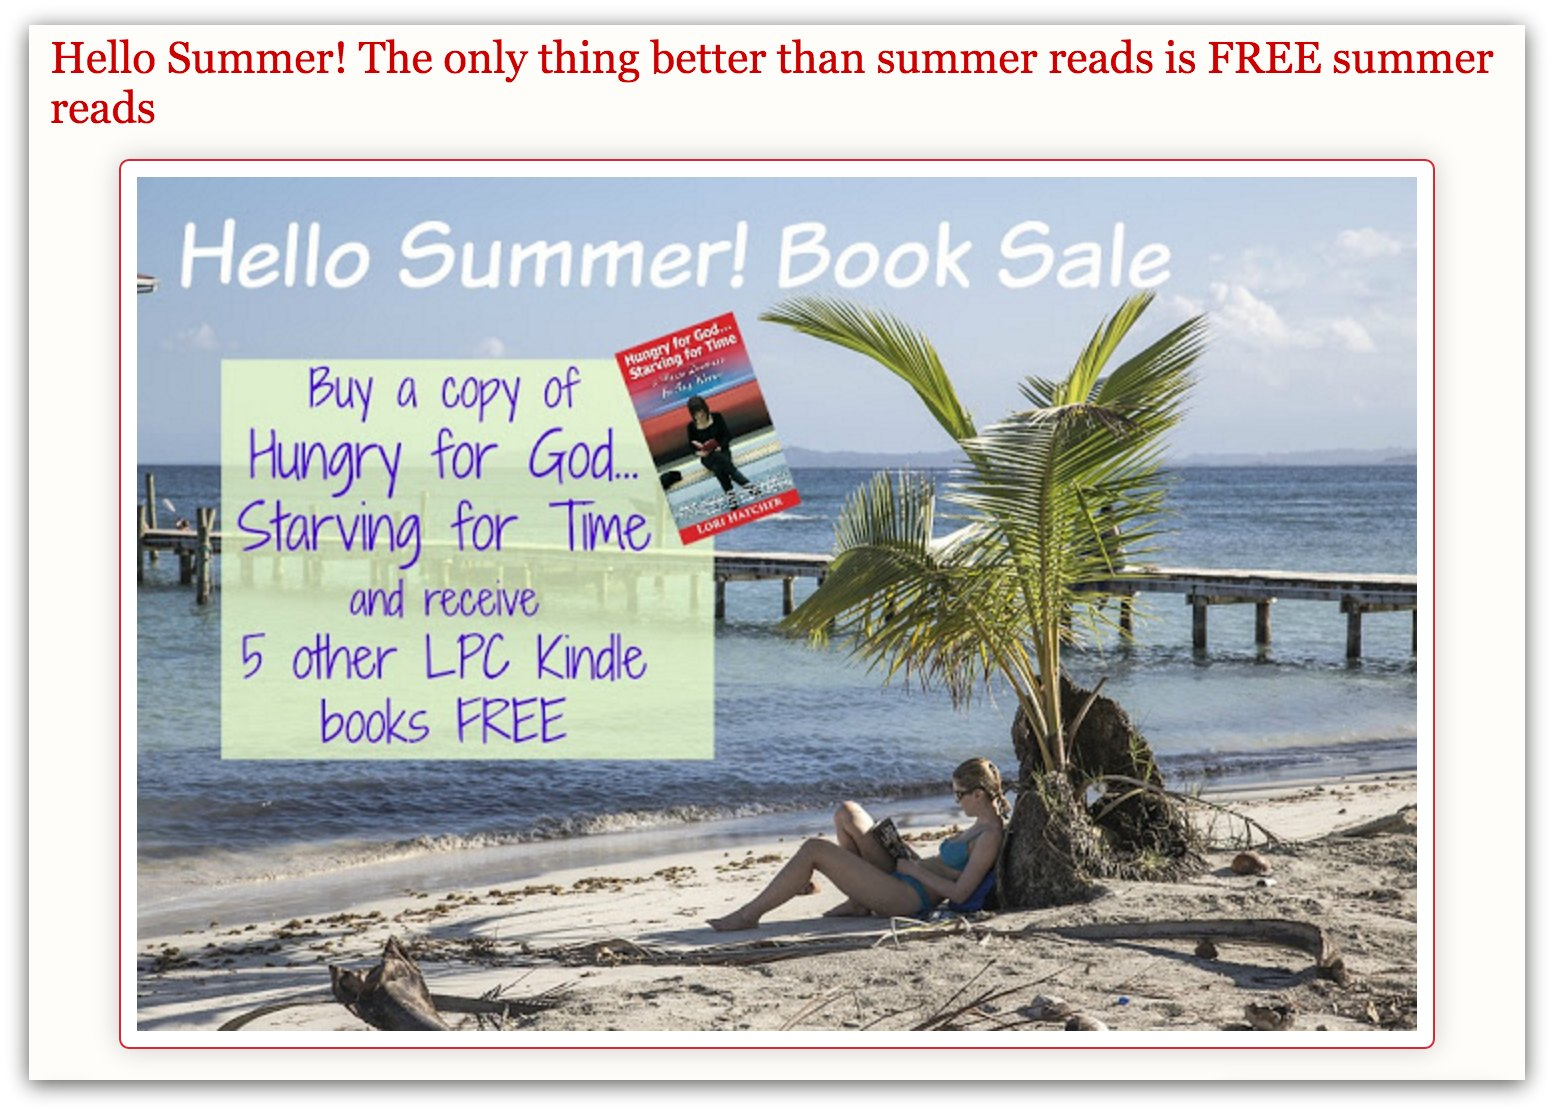 Summer Reading Excitement: Six books for the price of one, including Hungry for God, Starving for Time